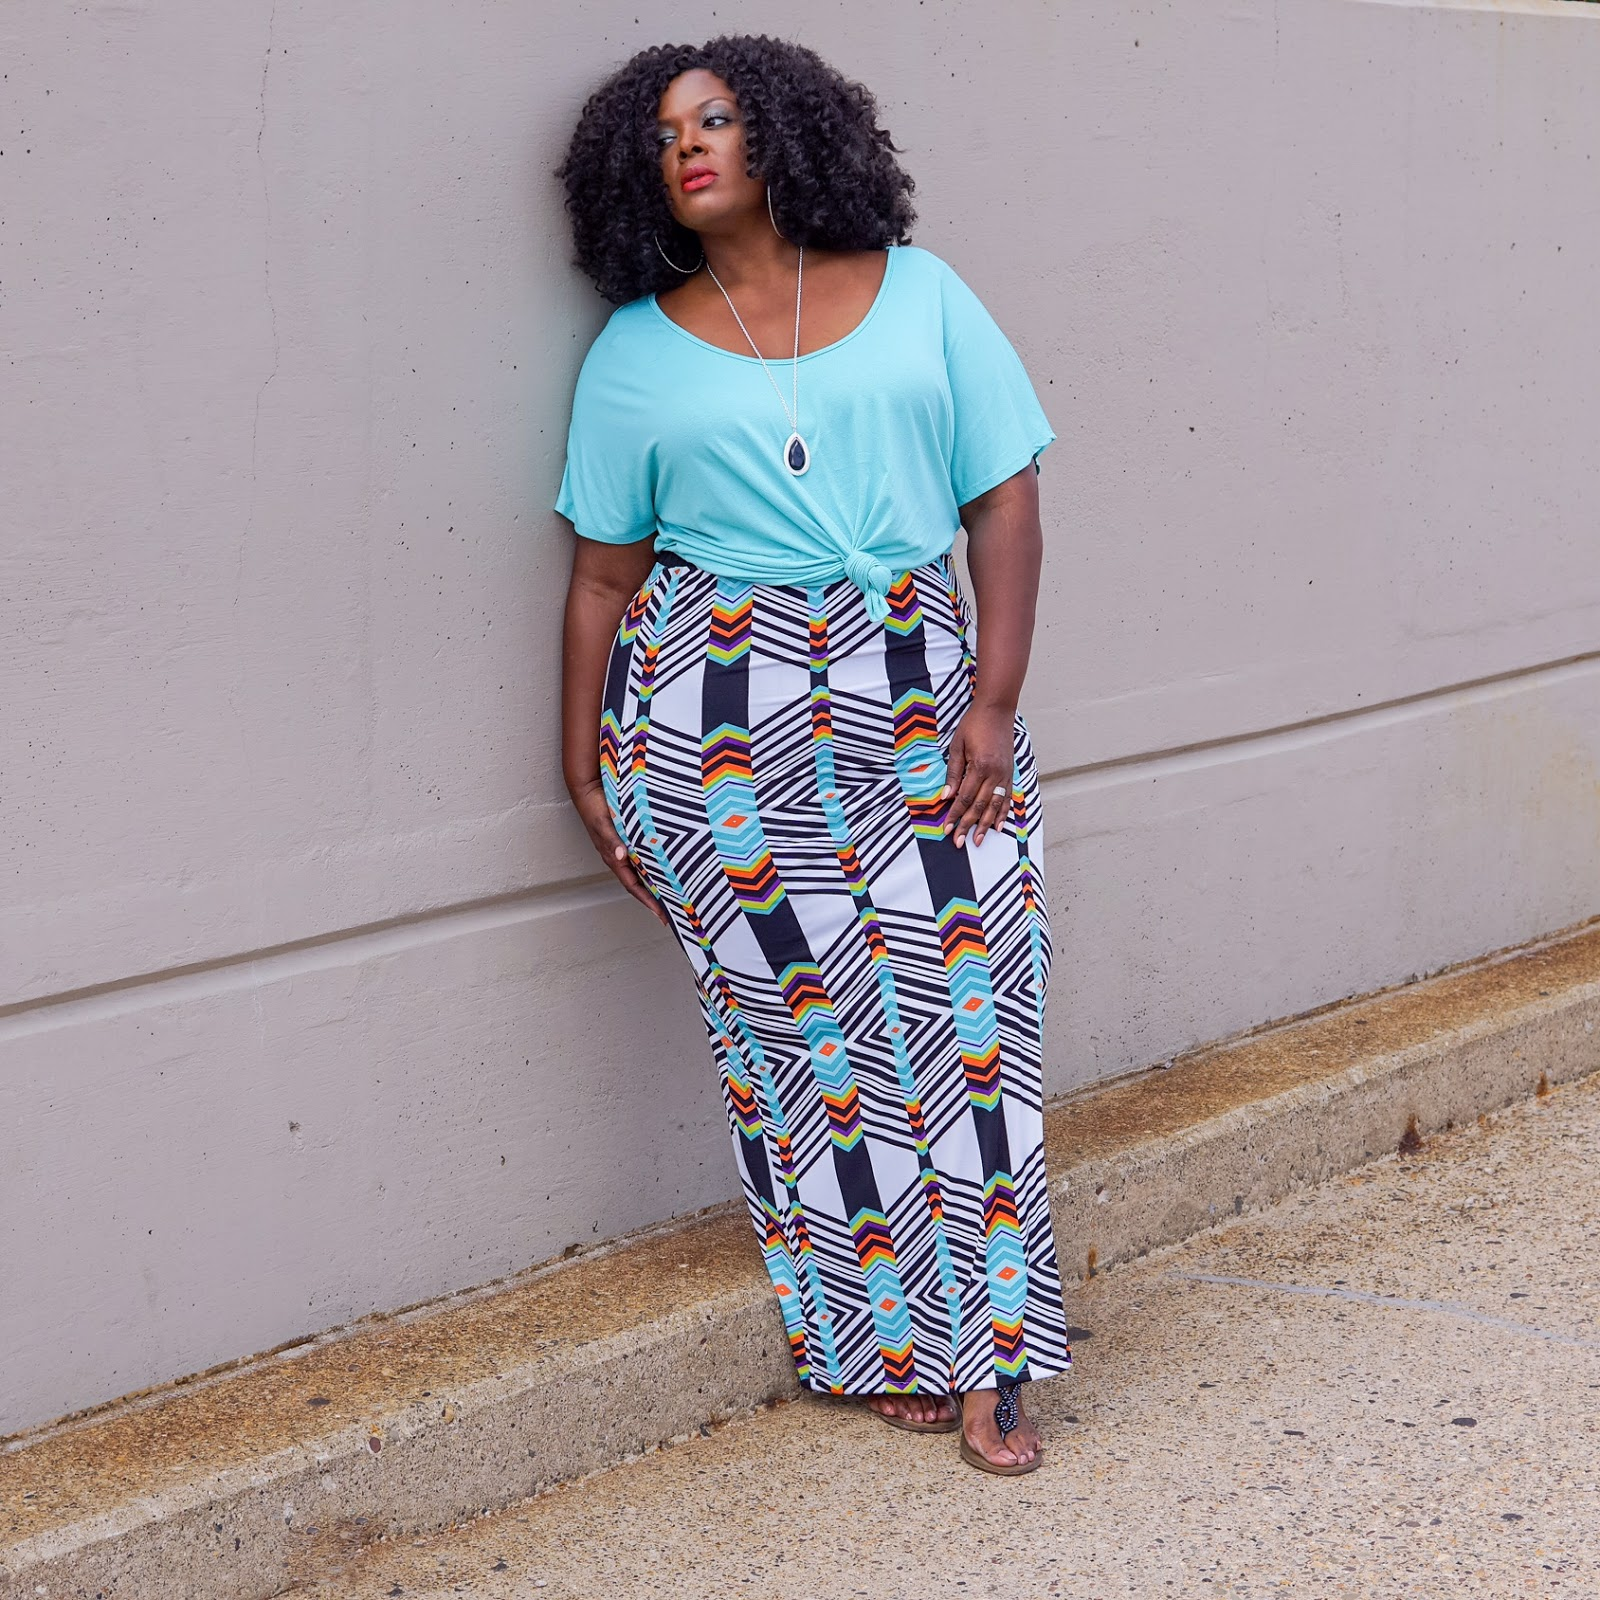 plus size skirts, plus size maxiskirts, maxiskirts, plus size skirts